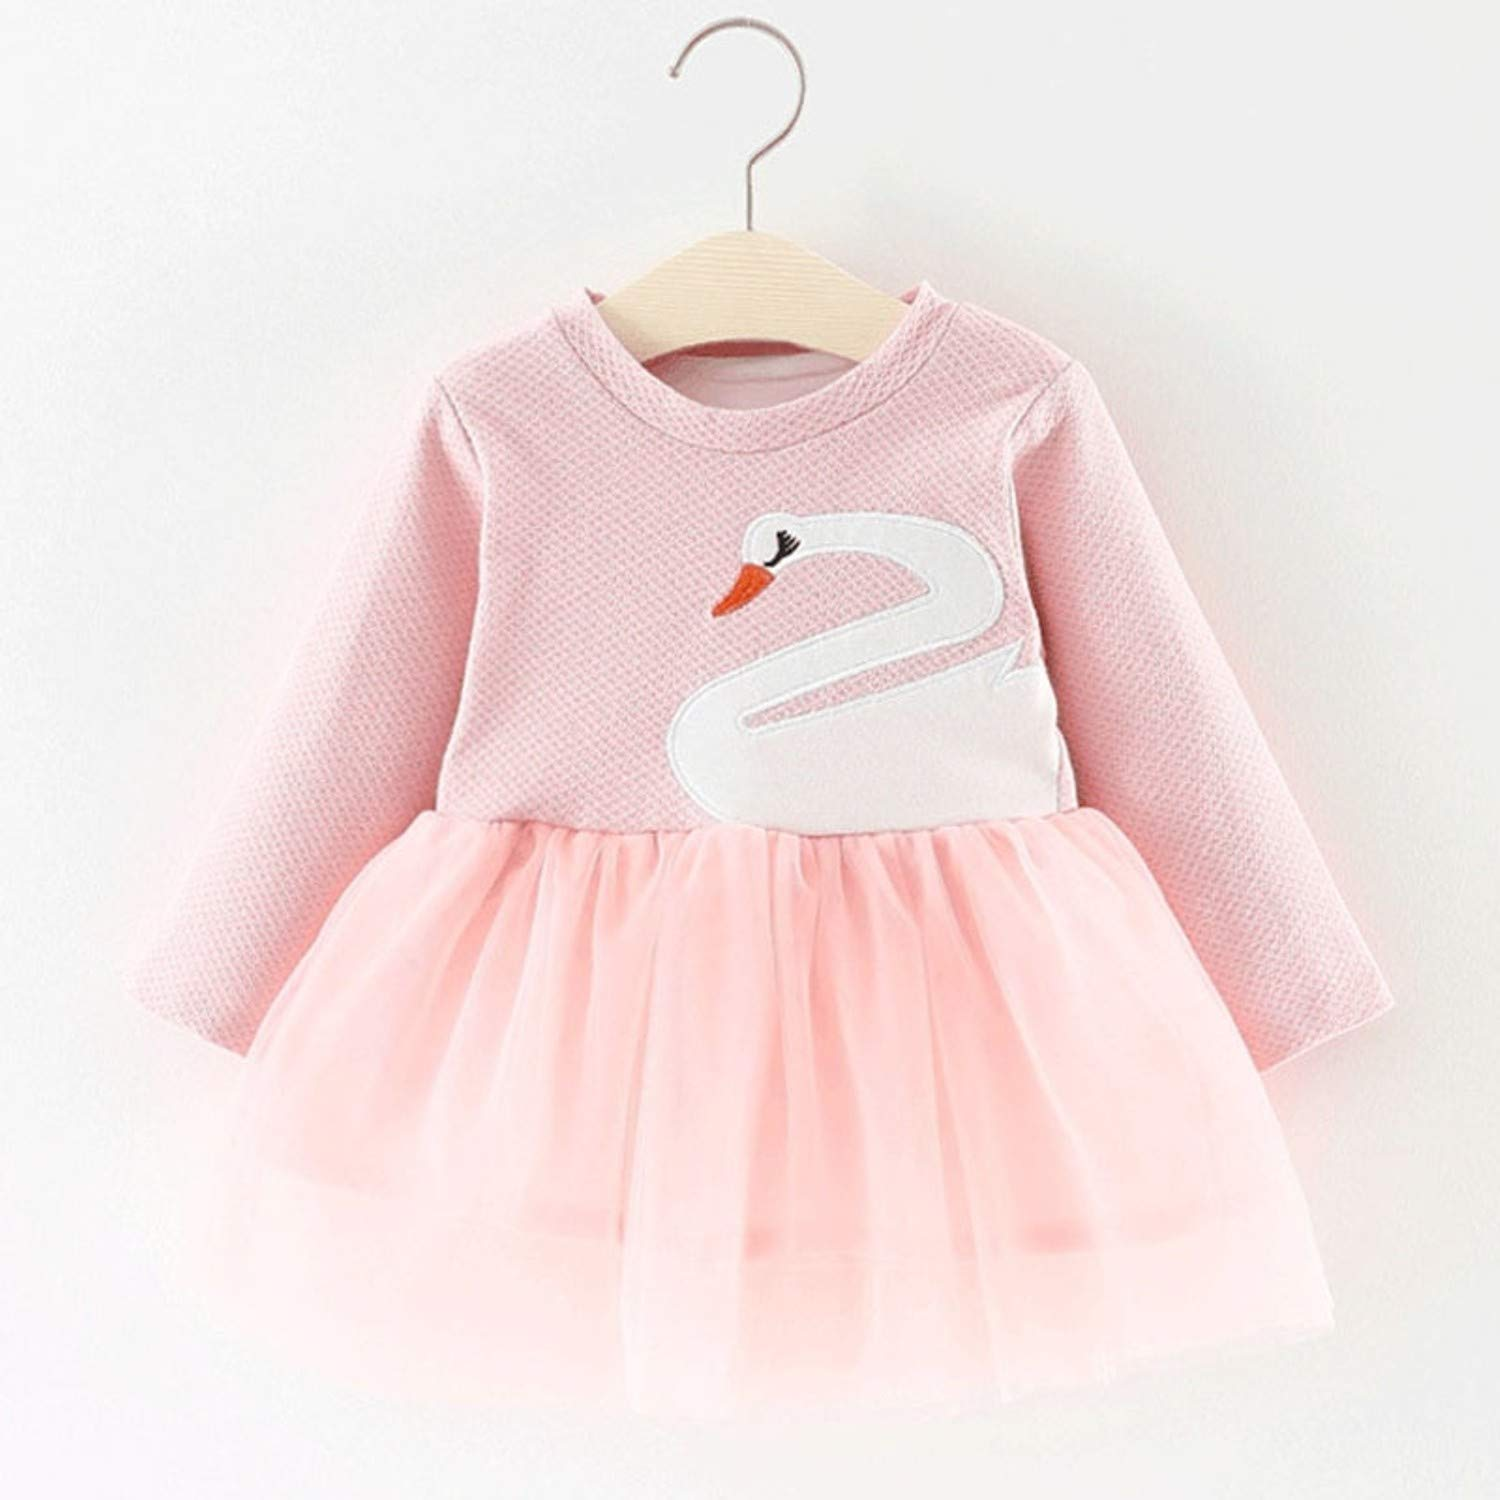 Amazon.com: Chitop Baby Girl Dress Casual Autumn Baby Clothes - Long ...